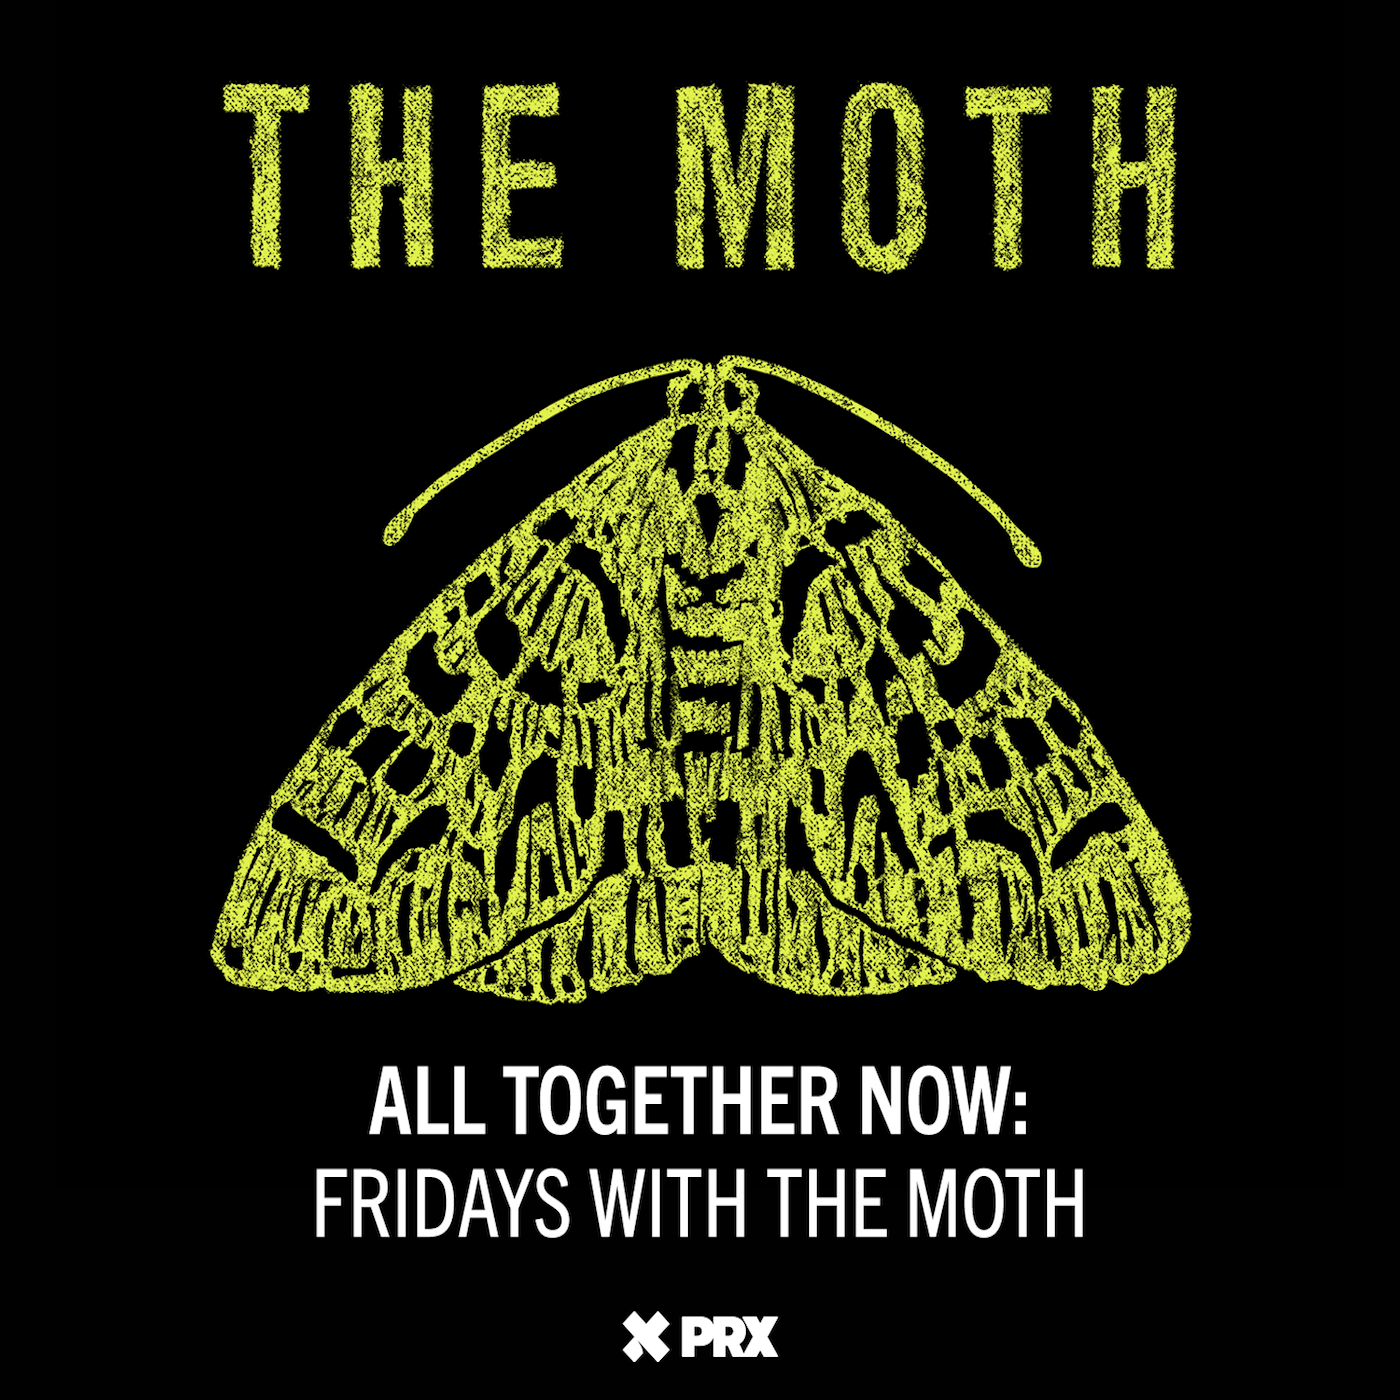 All Together Now: Fridays with The Moth - Chelsea Shorte